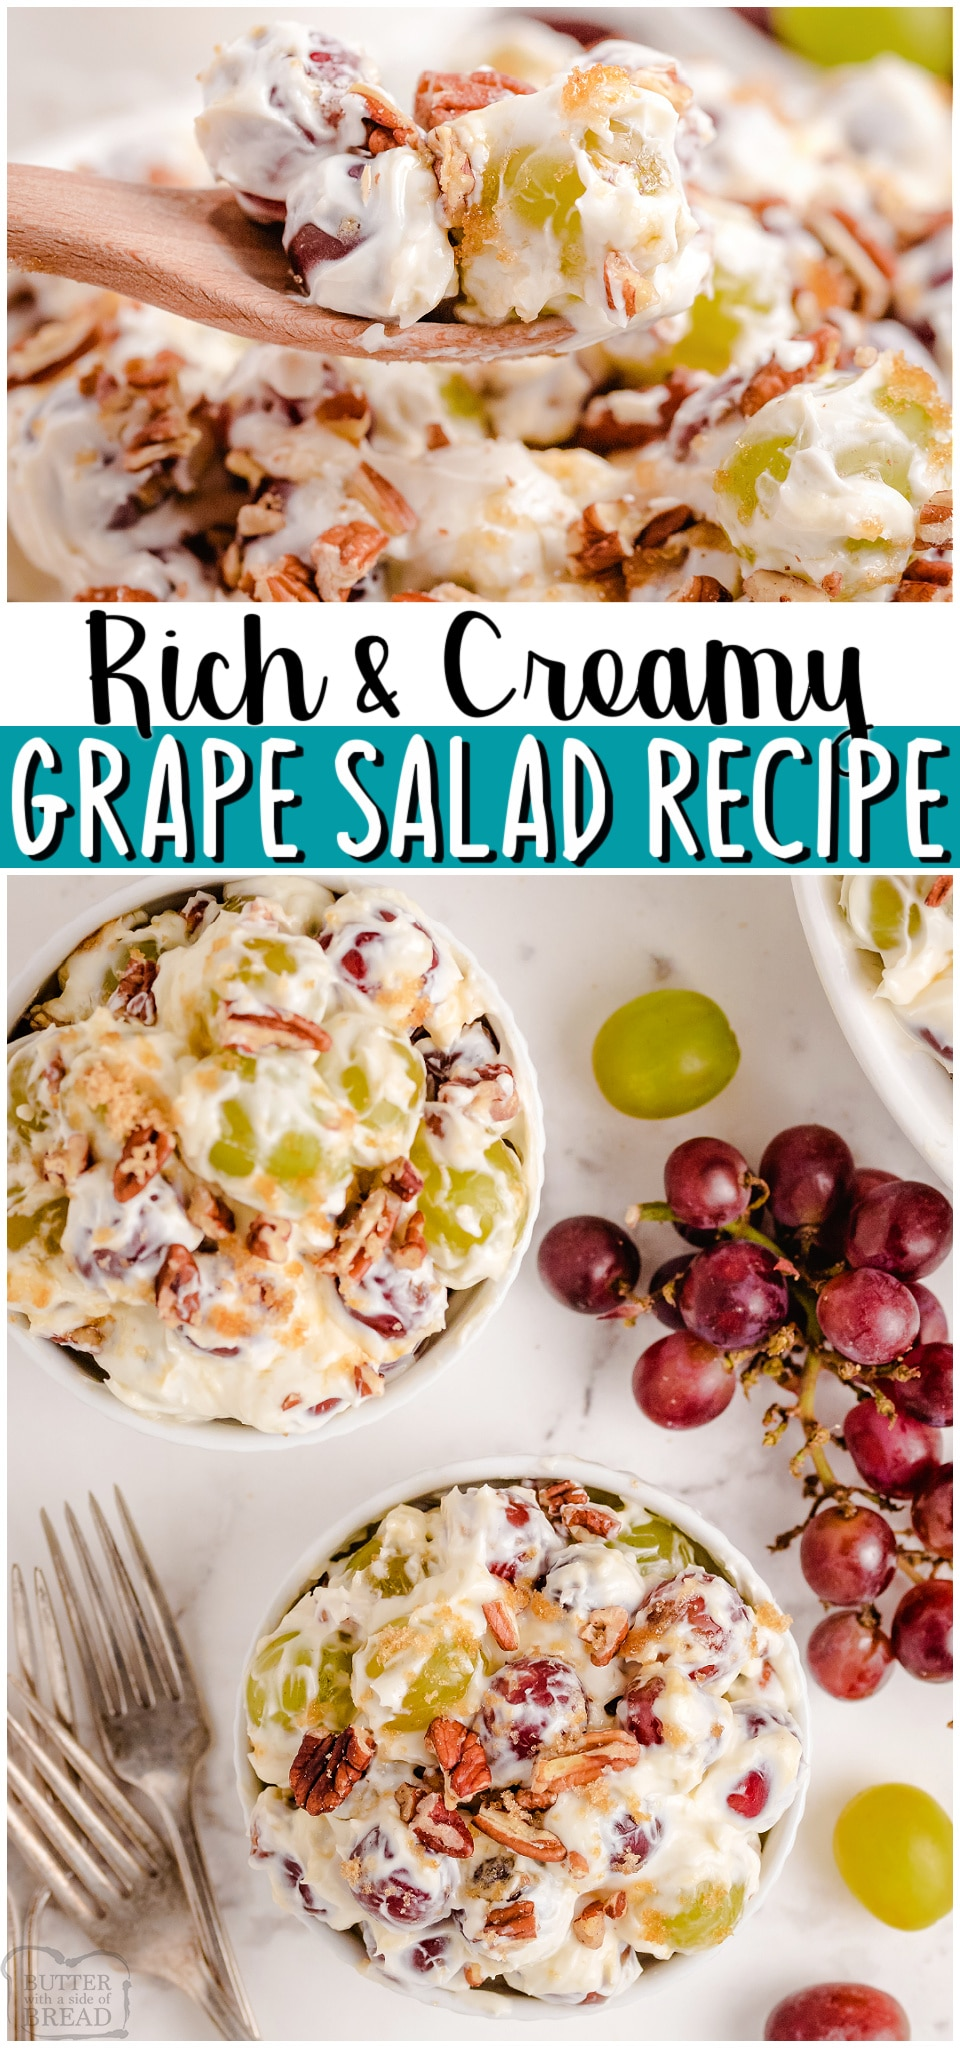 Red and Green Grape Salad tossed with a sweet cream cheese mixture then topped with brown sugar & chopped pecans. Decadent Creamy Grape Salad recipe perfect for special occasions! #grapes #salad #creamcheese #easyrecipe from BUTTER WITH A SIDE OF BREAD